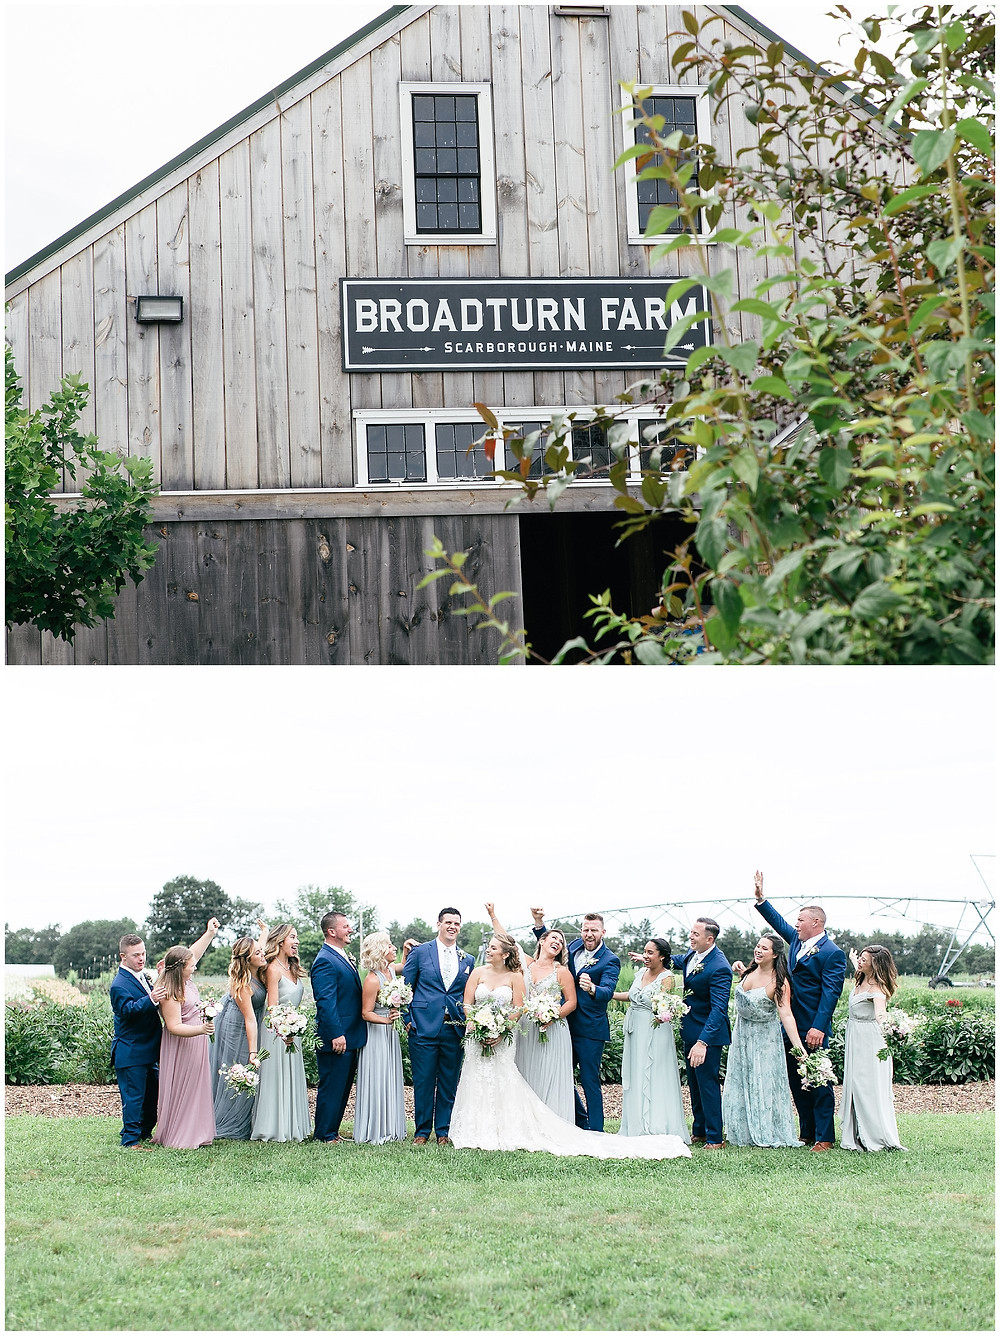 Wedding at Broadturn Farm in Scarborough Maine with the wedding party cheering the soon to be newly weds!